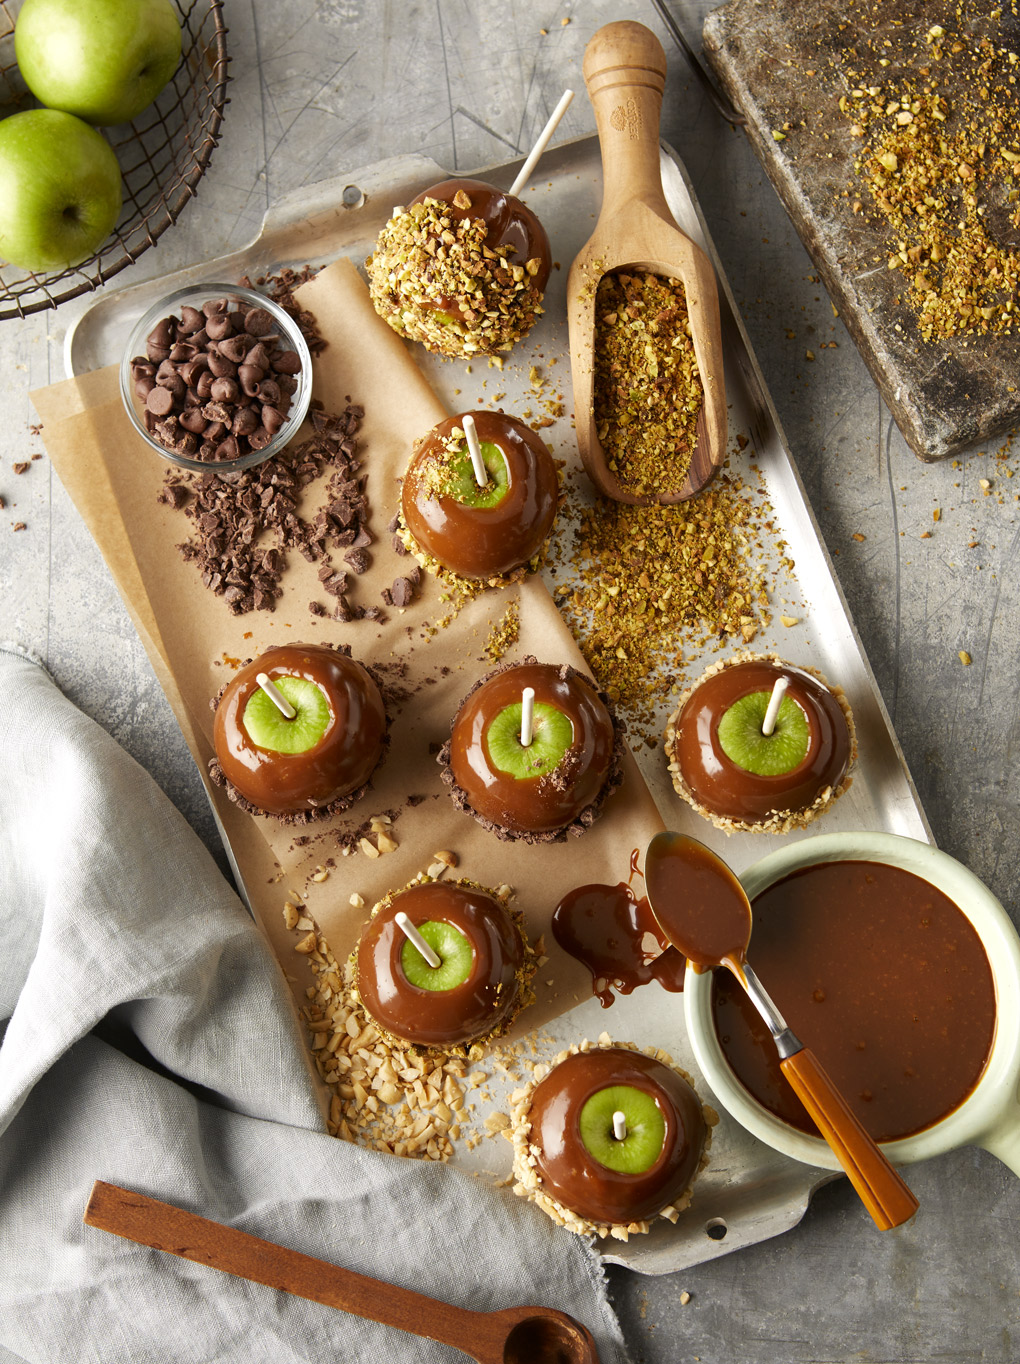 Caramel-Apples-Hero-Cropped-apf